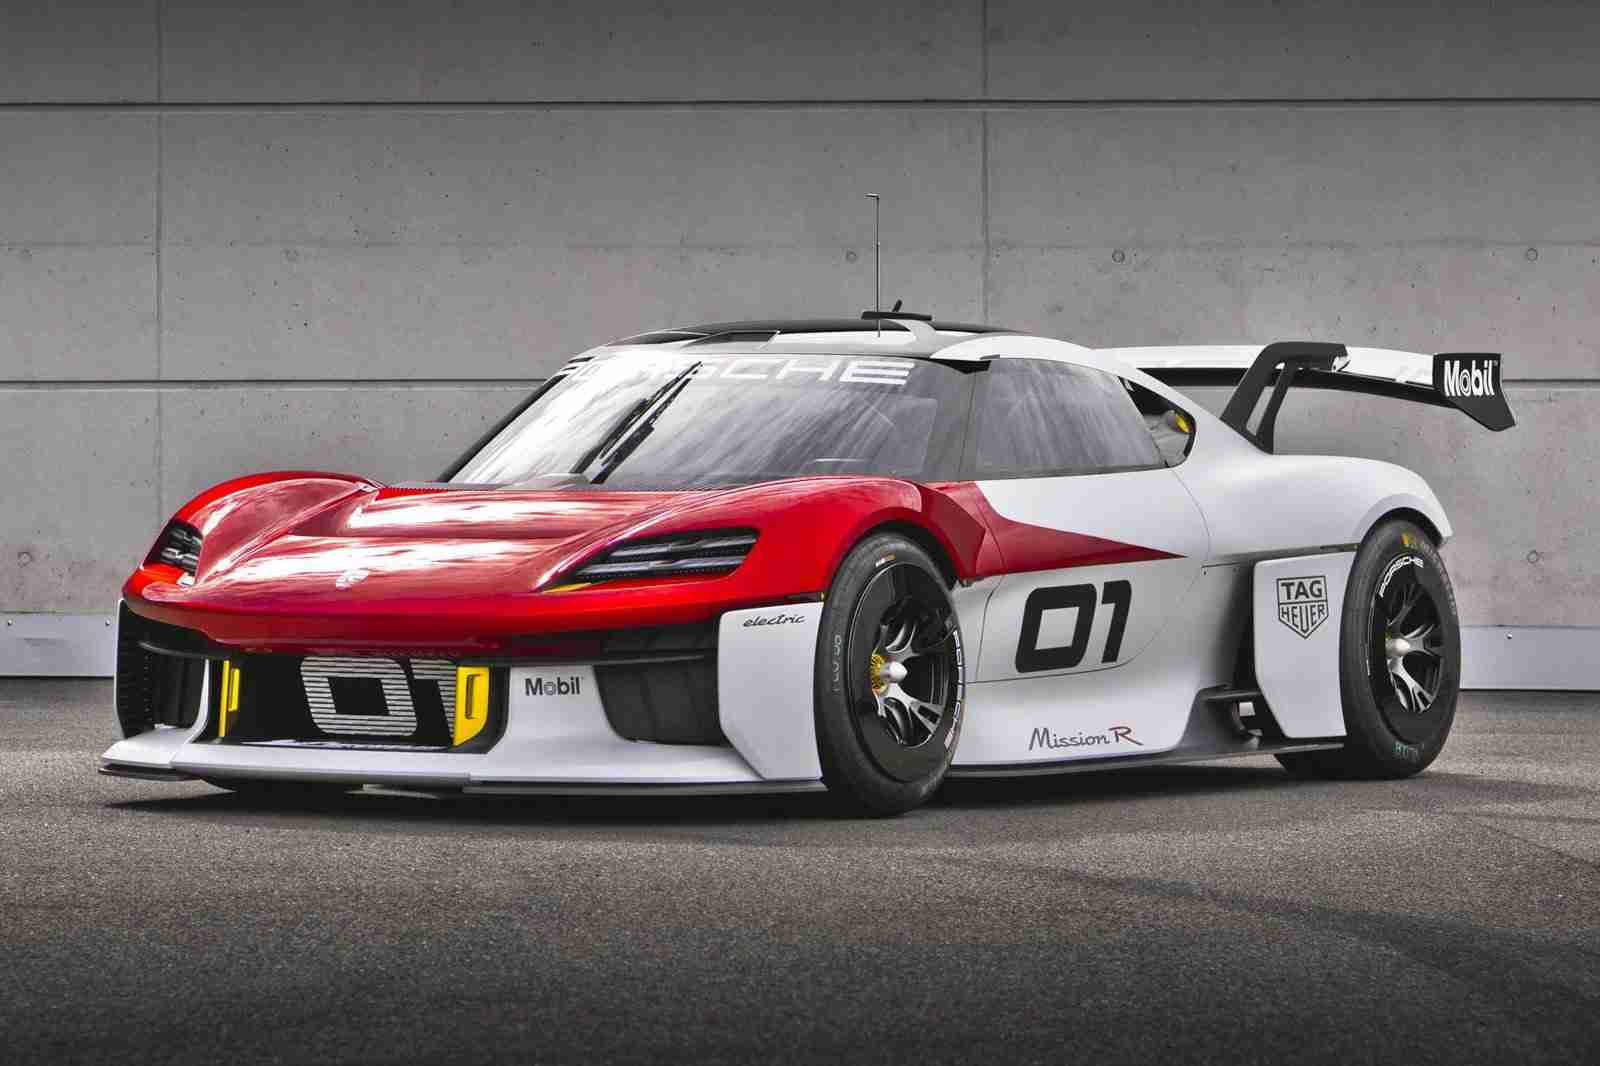 Porsche has revealed an interesting story about its recent show car named the Mission R. Apparently, the engineering crew built it from the ground up every bit as thoroughly as they would a mass-market car, and tested the disembodied chassis on the Porsche test track six months before the premiere.